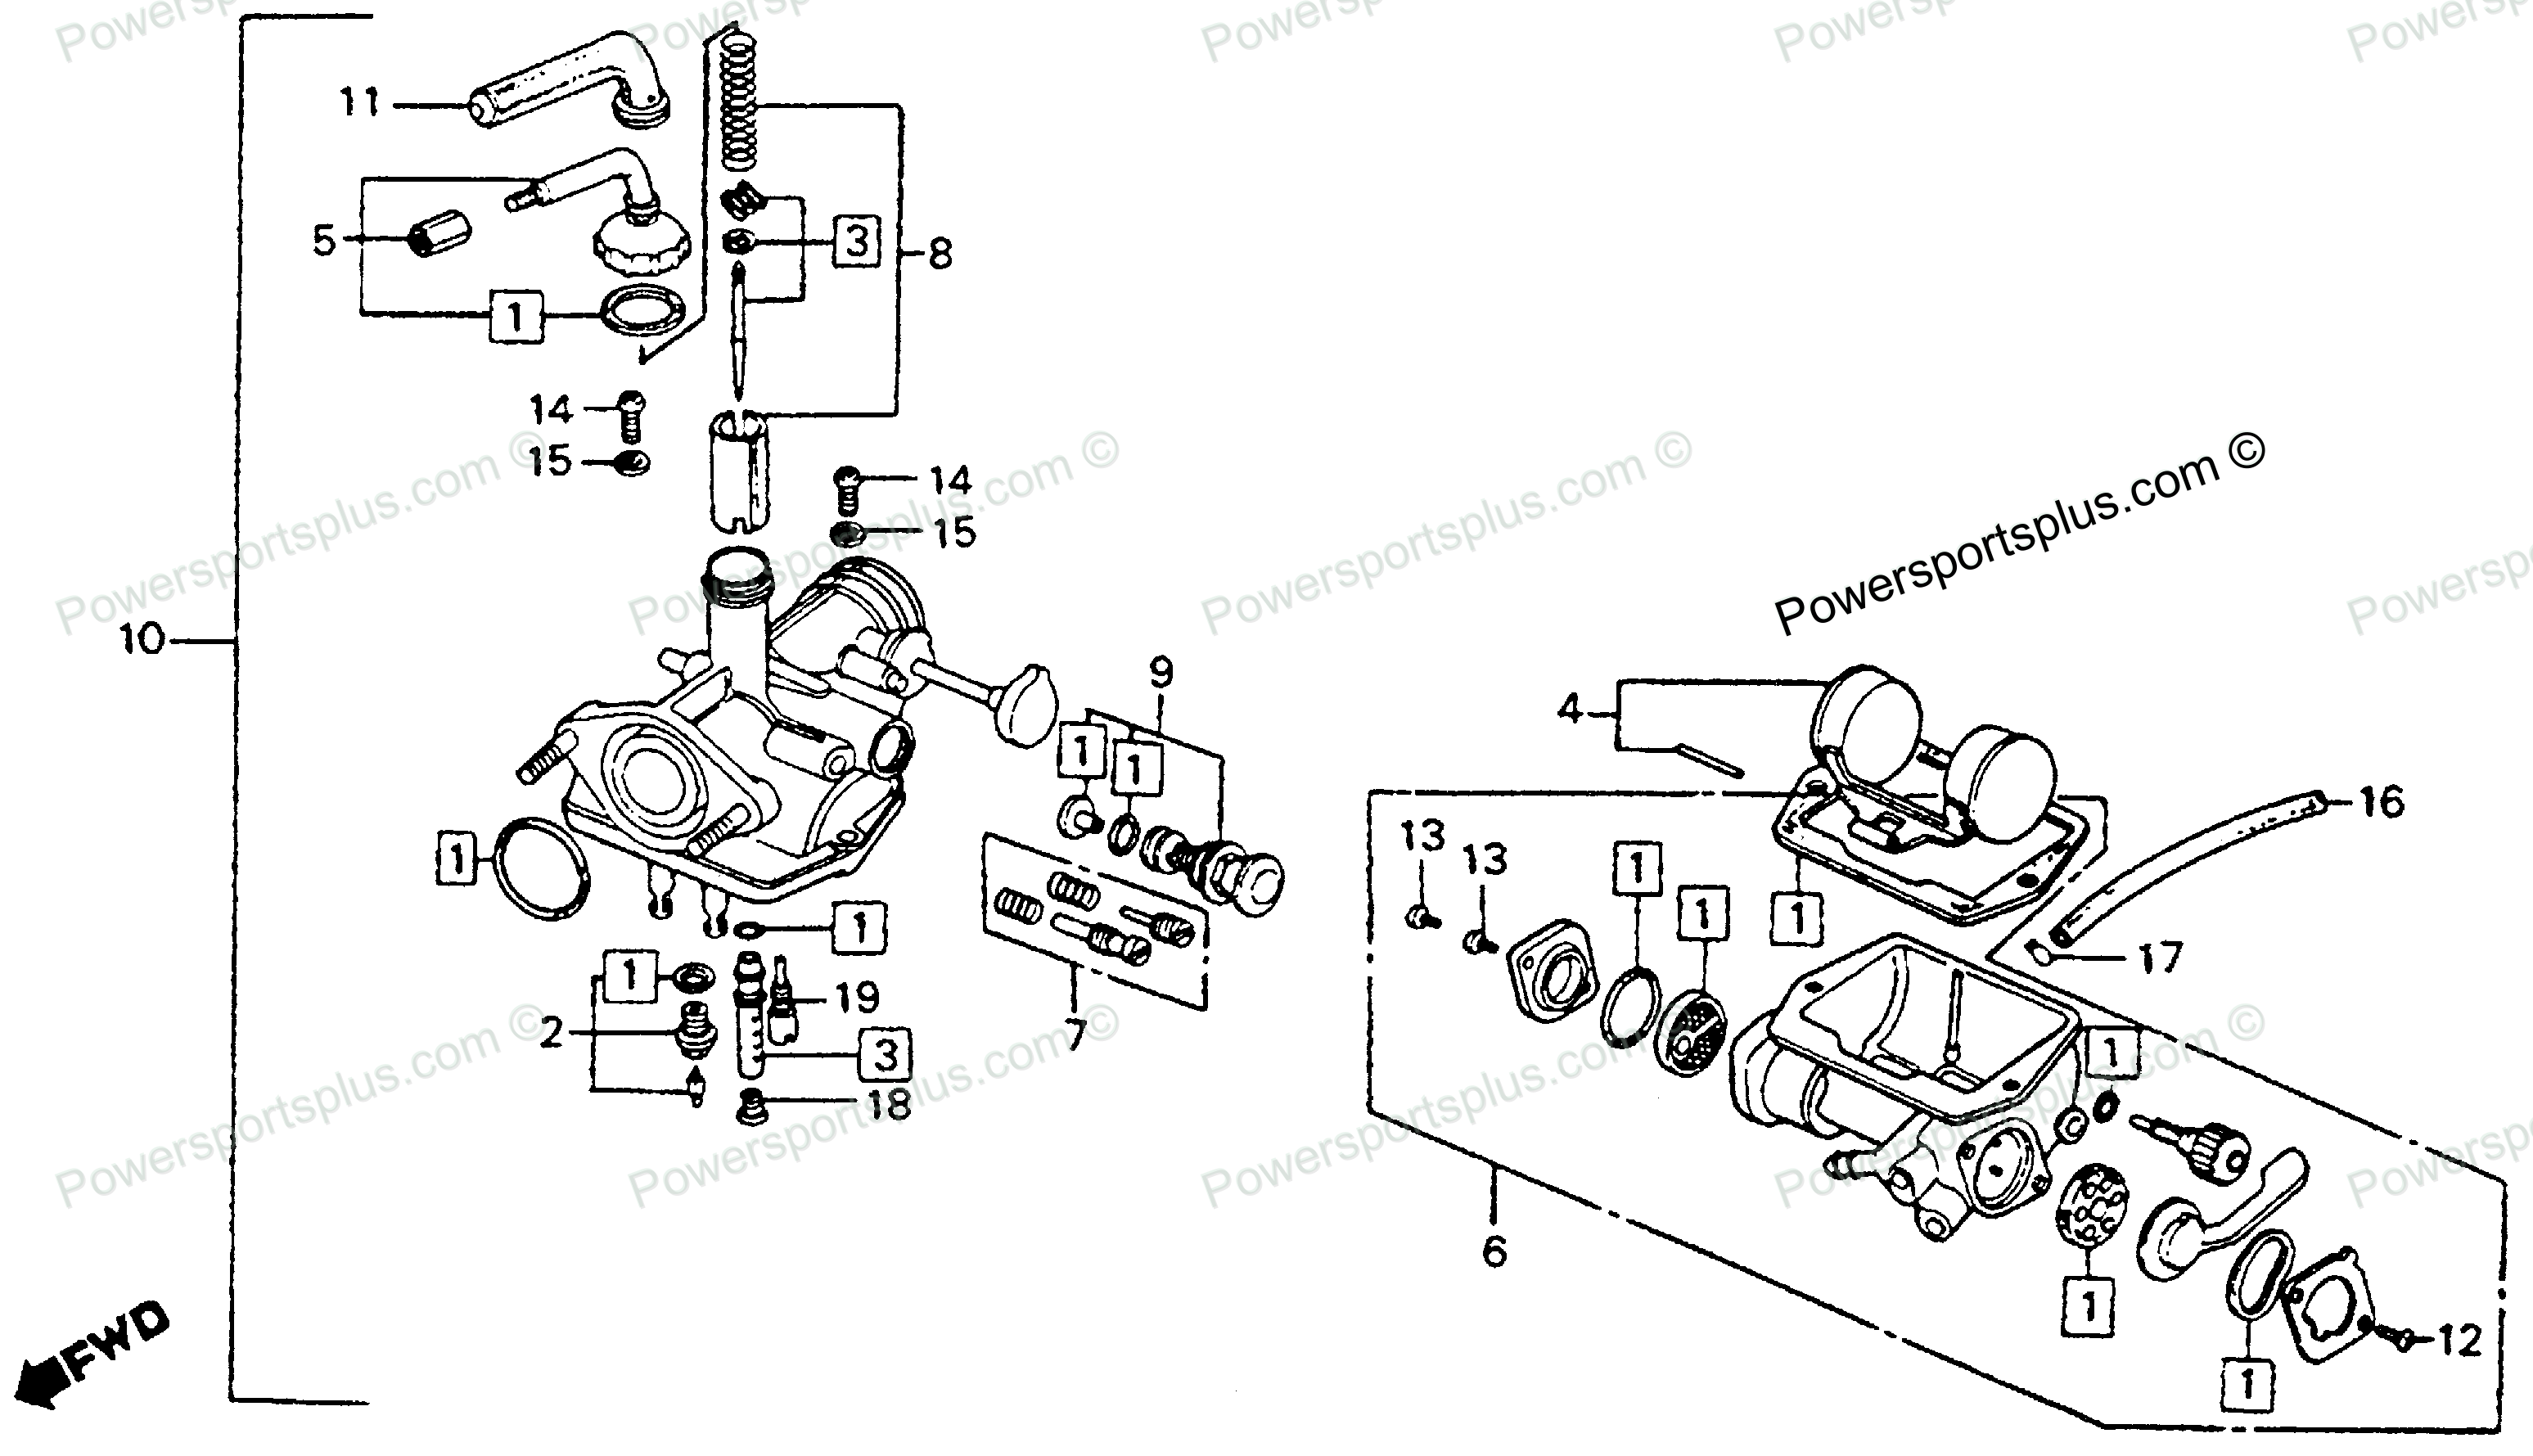 medium resolution of diagram of honda motorcycle parts 1976 ct90 a carburetor k6 77 diagram honda motorcycle parts